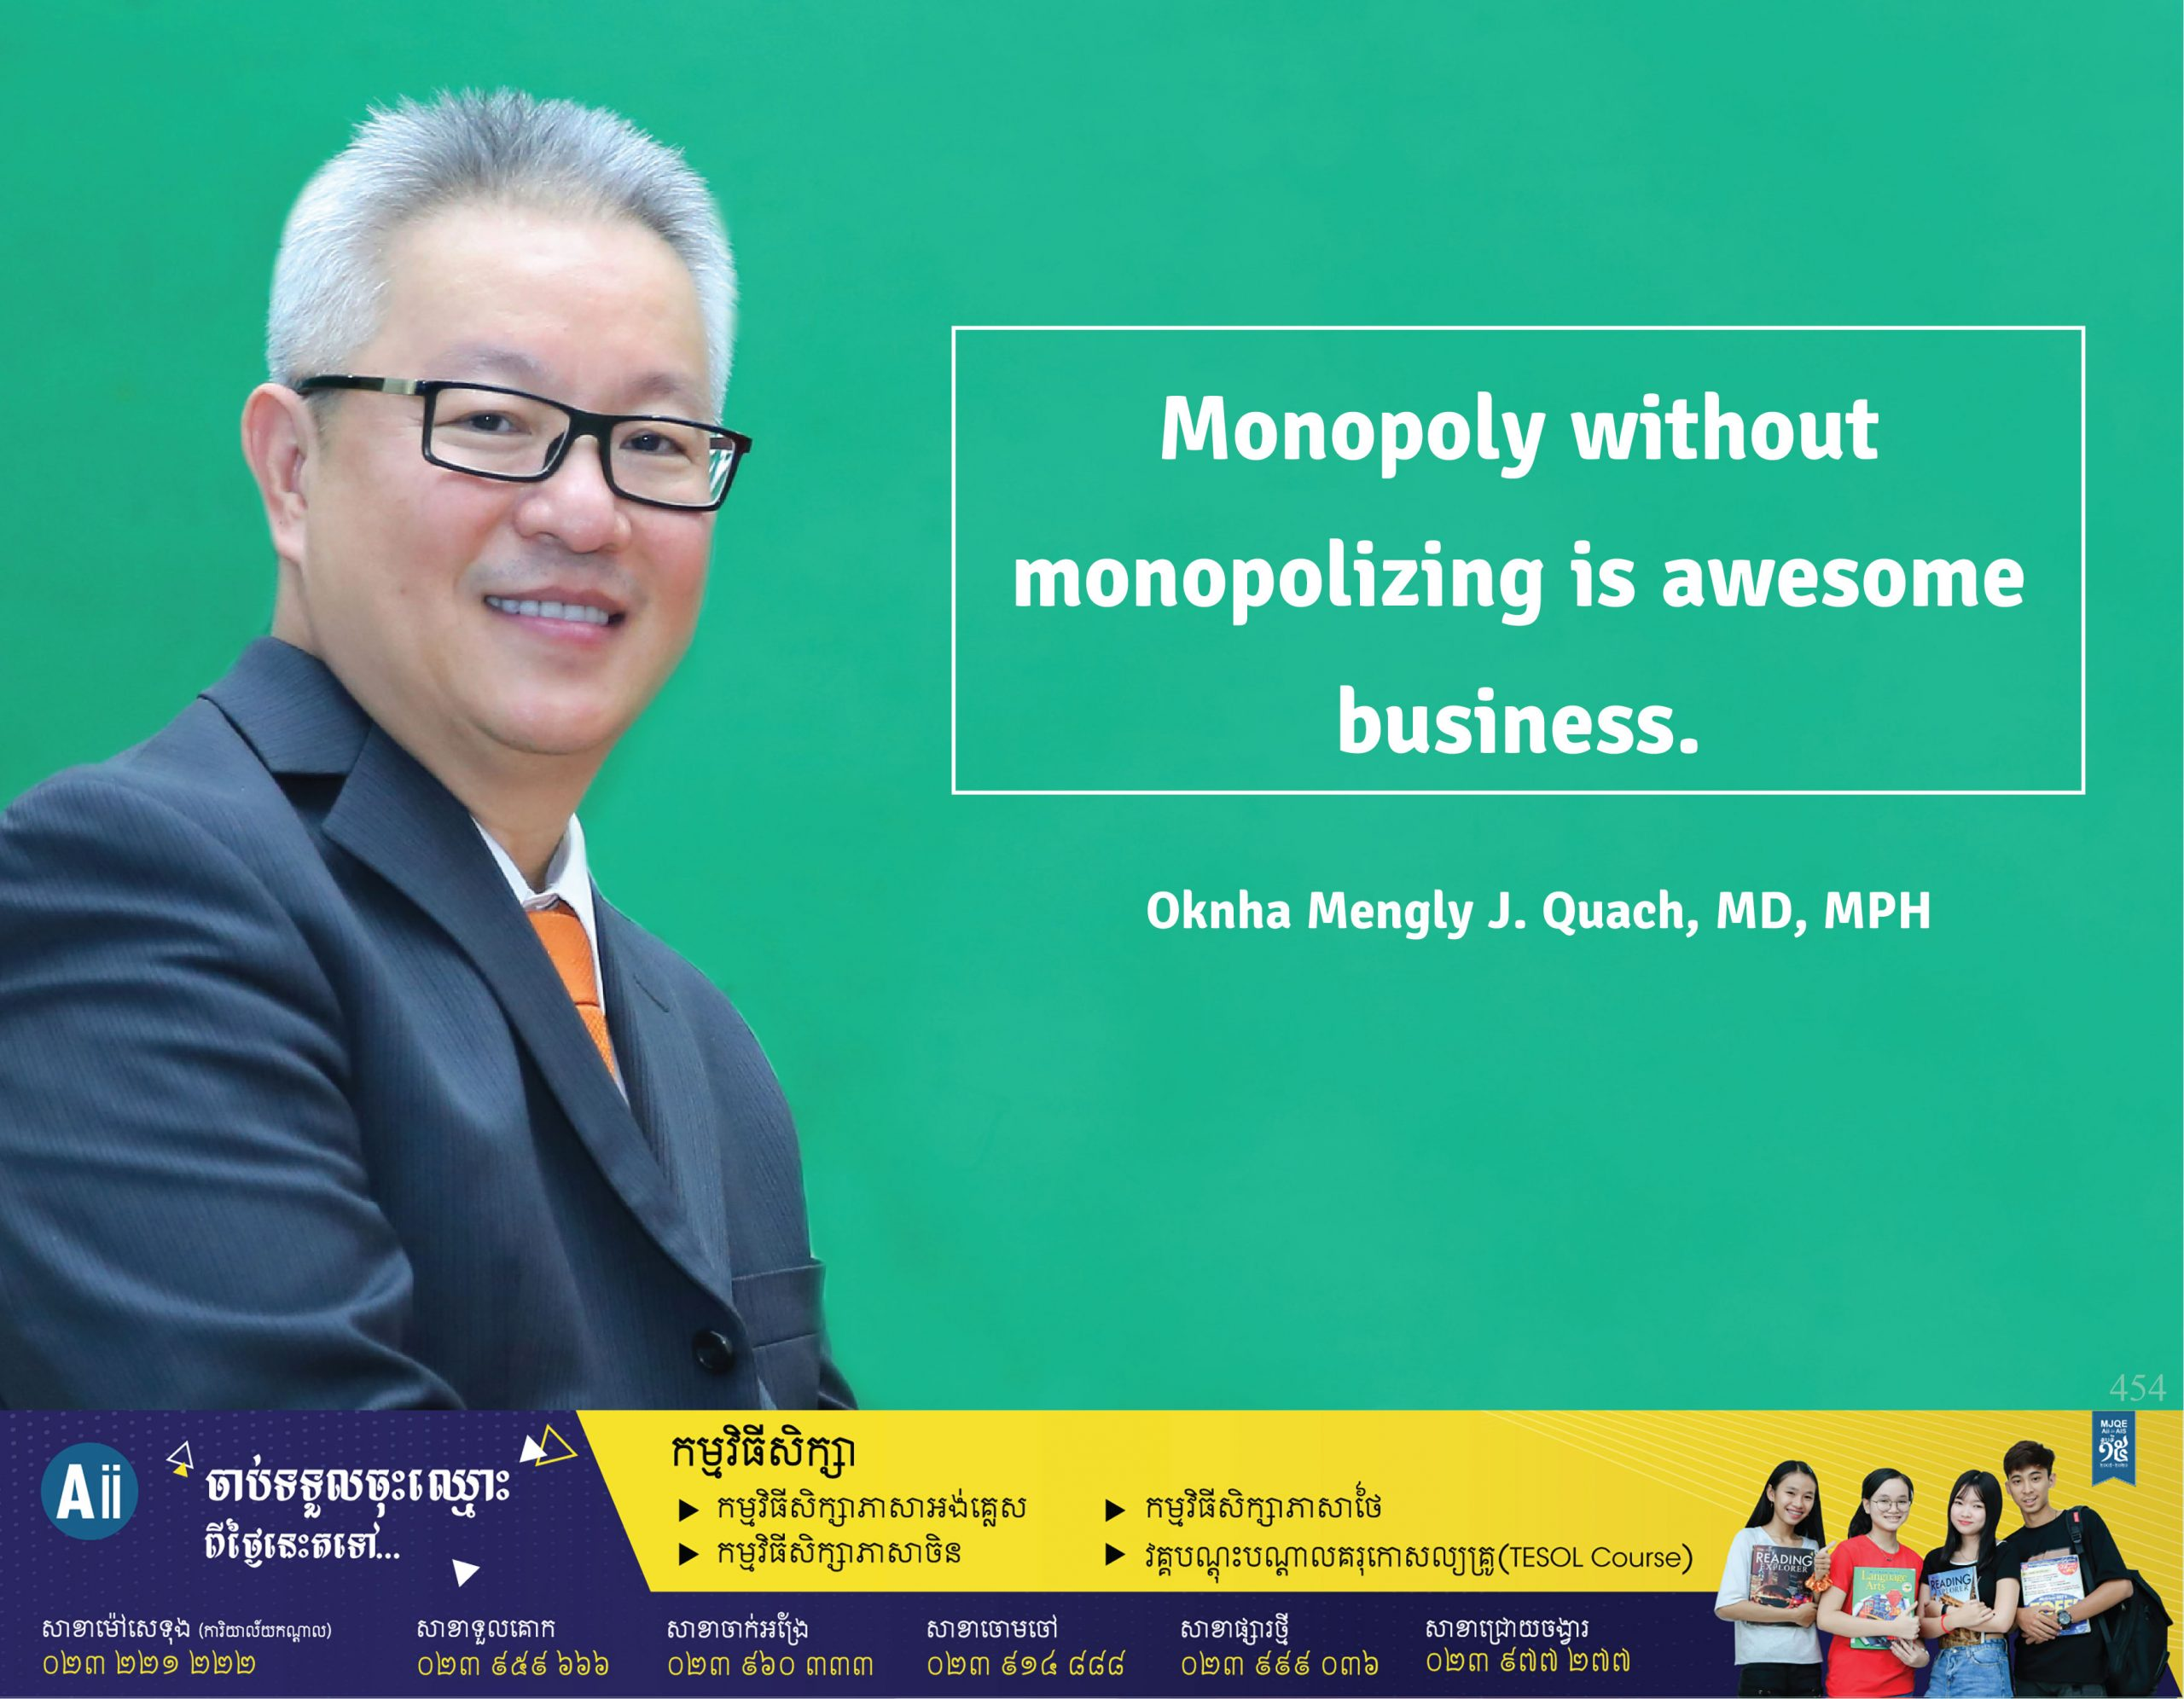 Monopoly without monopolizing is awesome business.